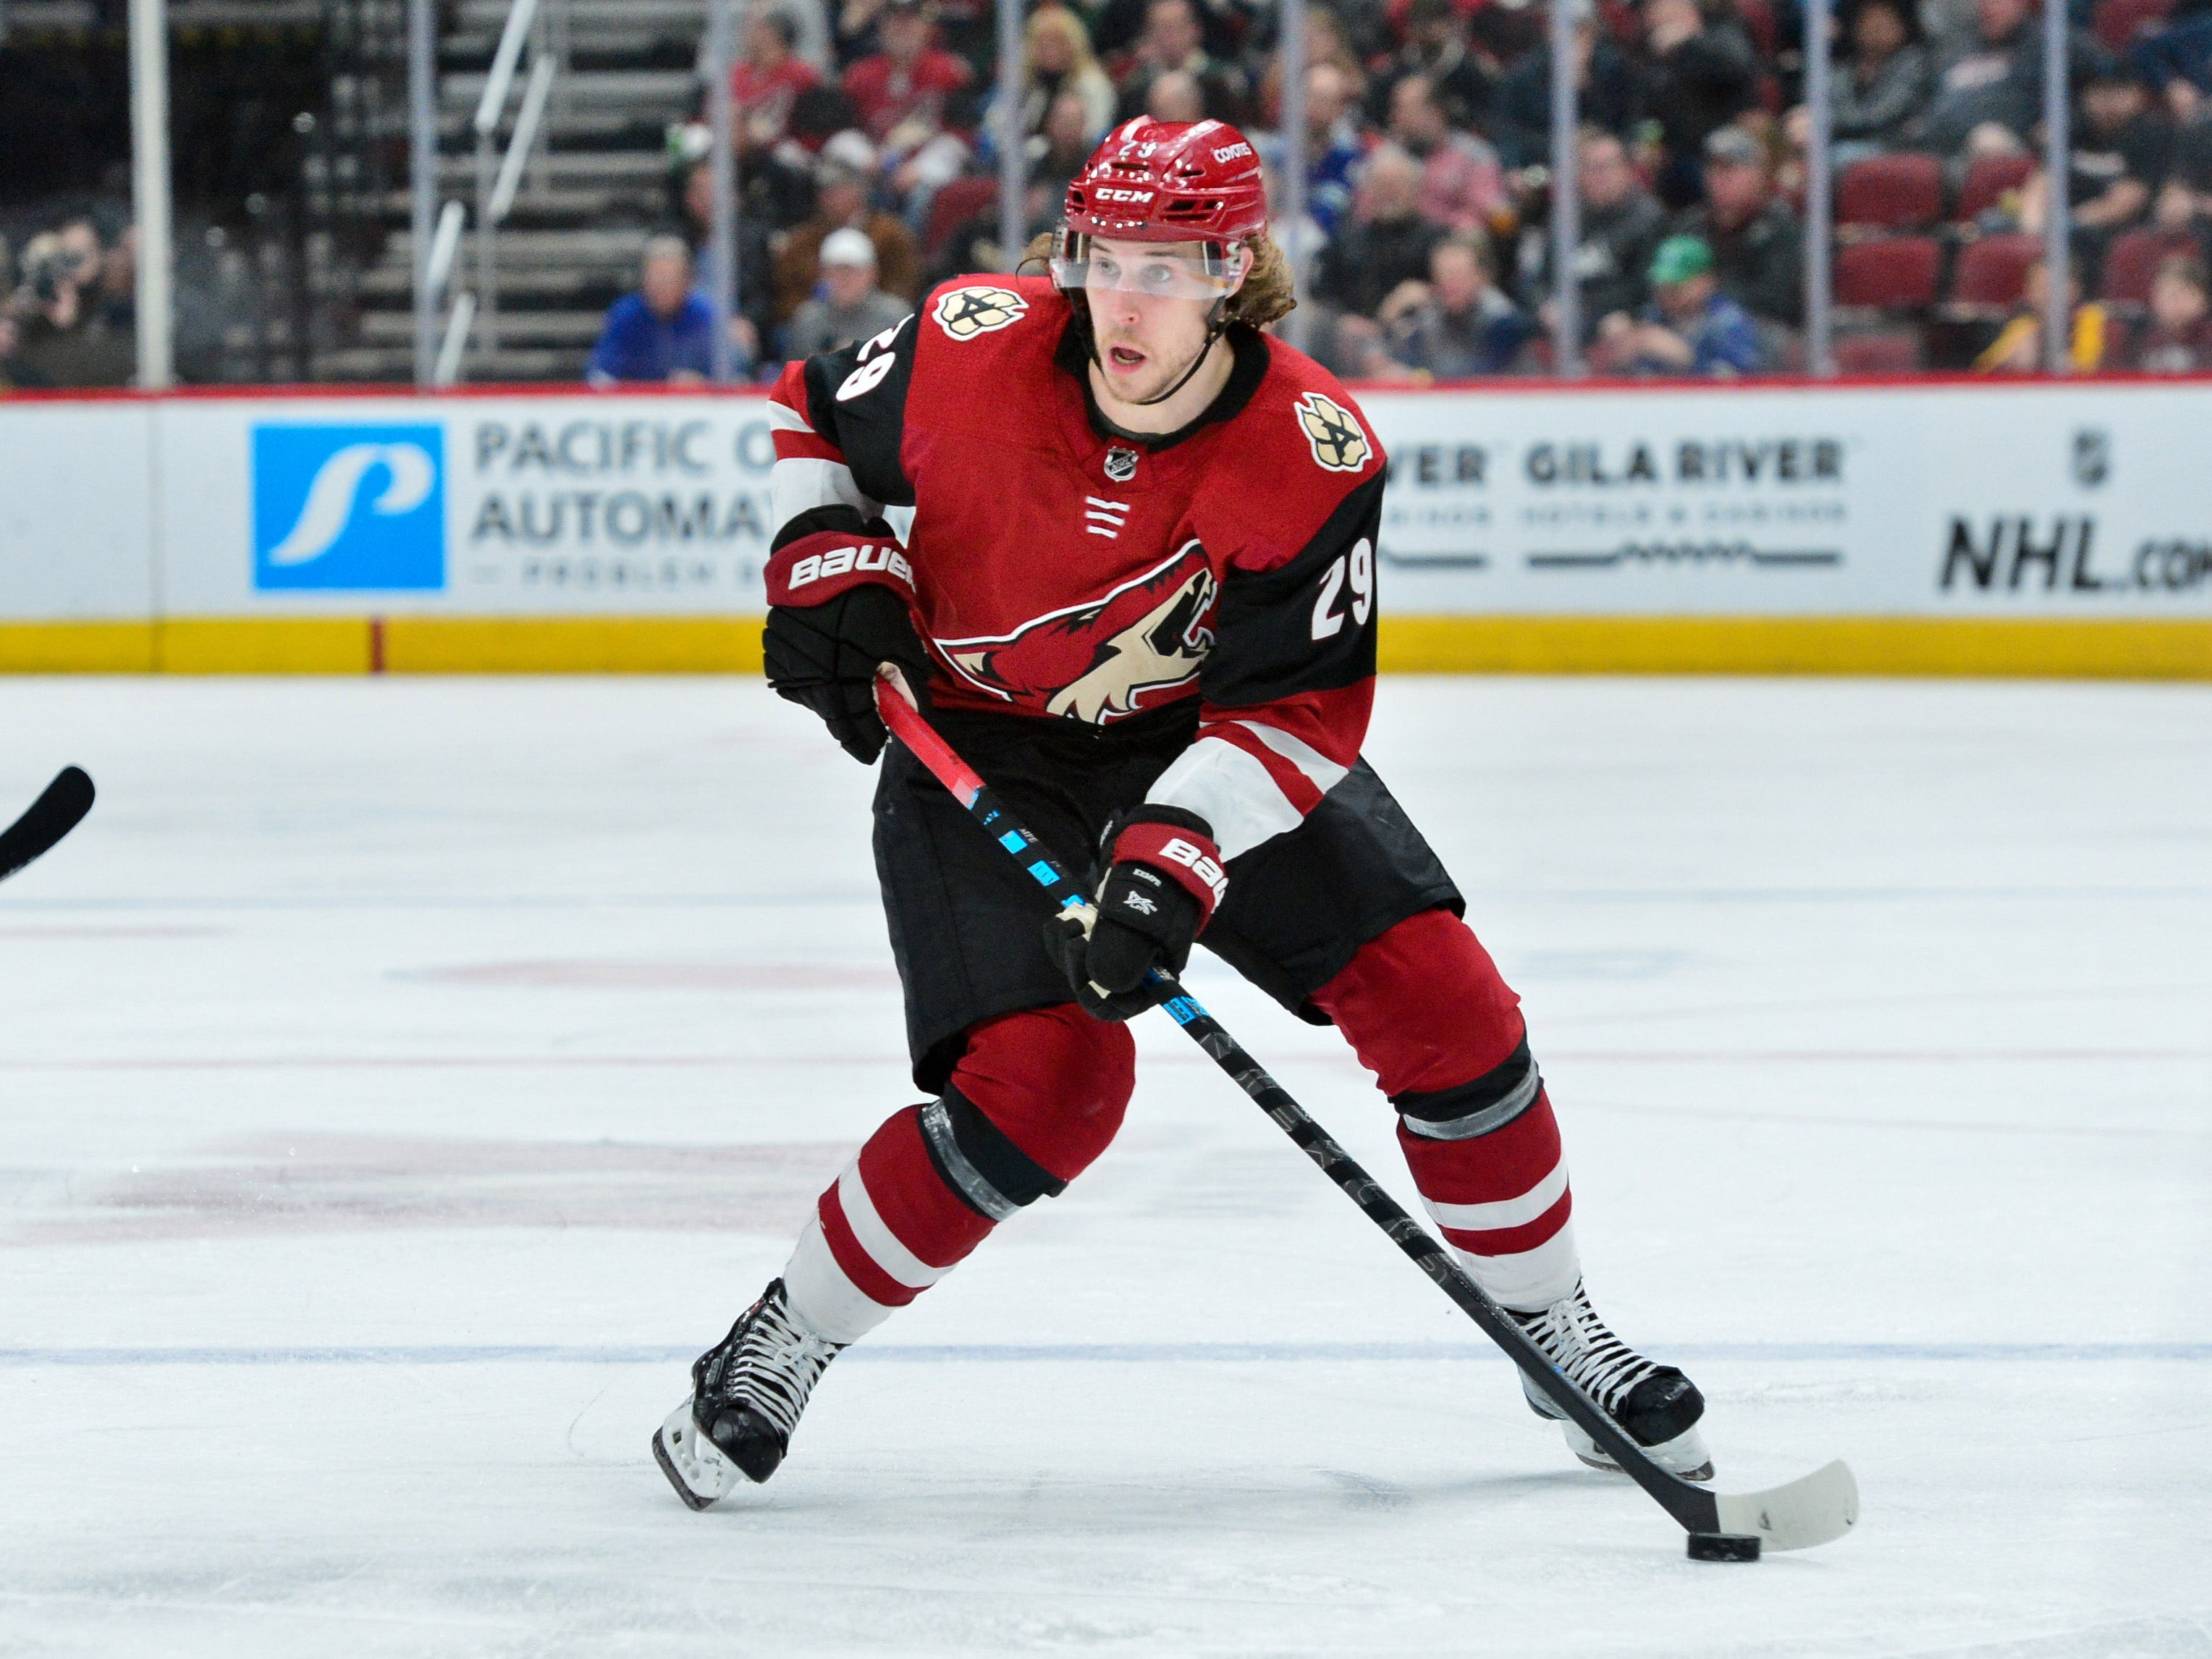 Feb 28, 2019; Glendale, AZ, USA; Arizona Coyotes right wing Mario Kempe (29) skates with the puck during the second period against the Vancouver Canucks at Gila River Arena.